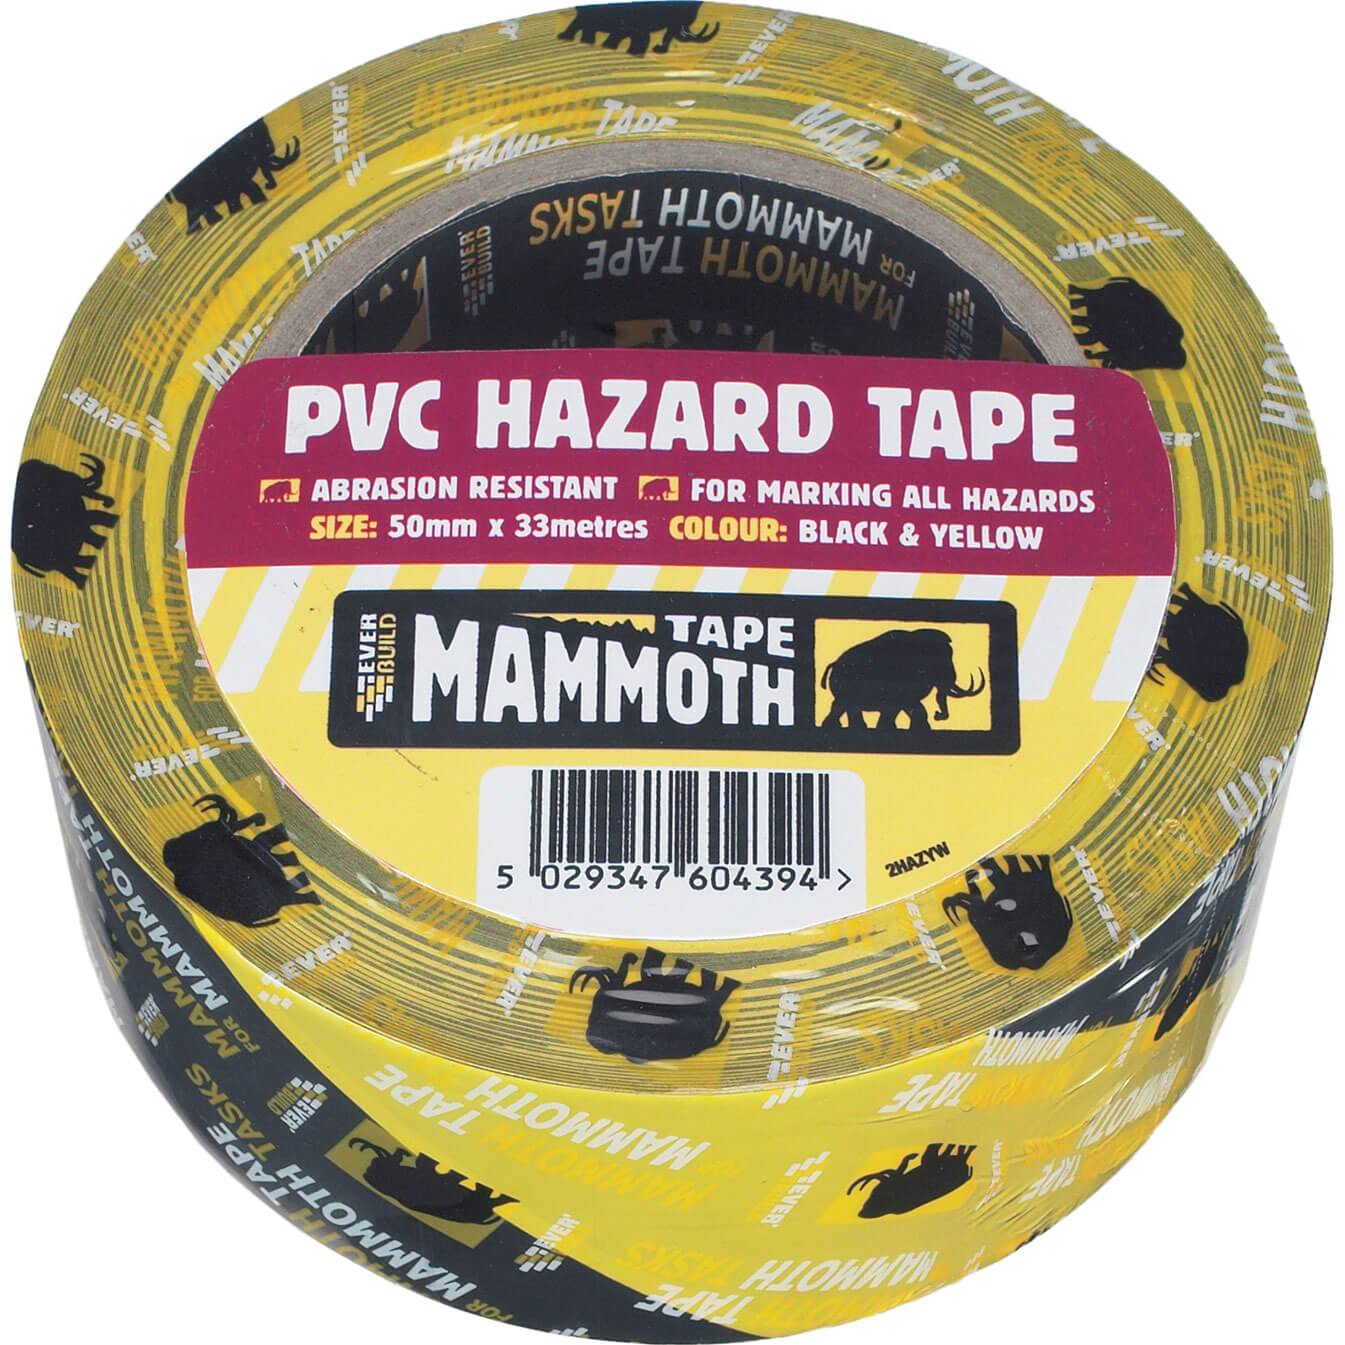 Image of Everbuild PVC Hazard Tape Black / Yellow 50mm 33m